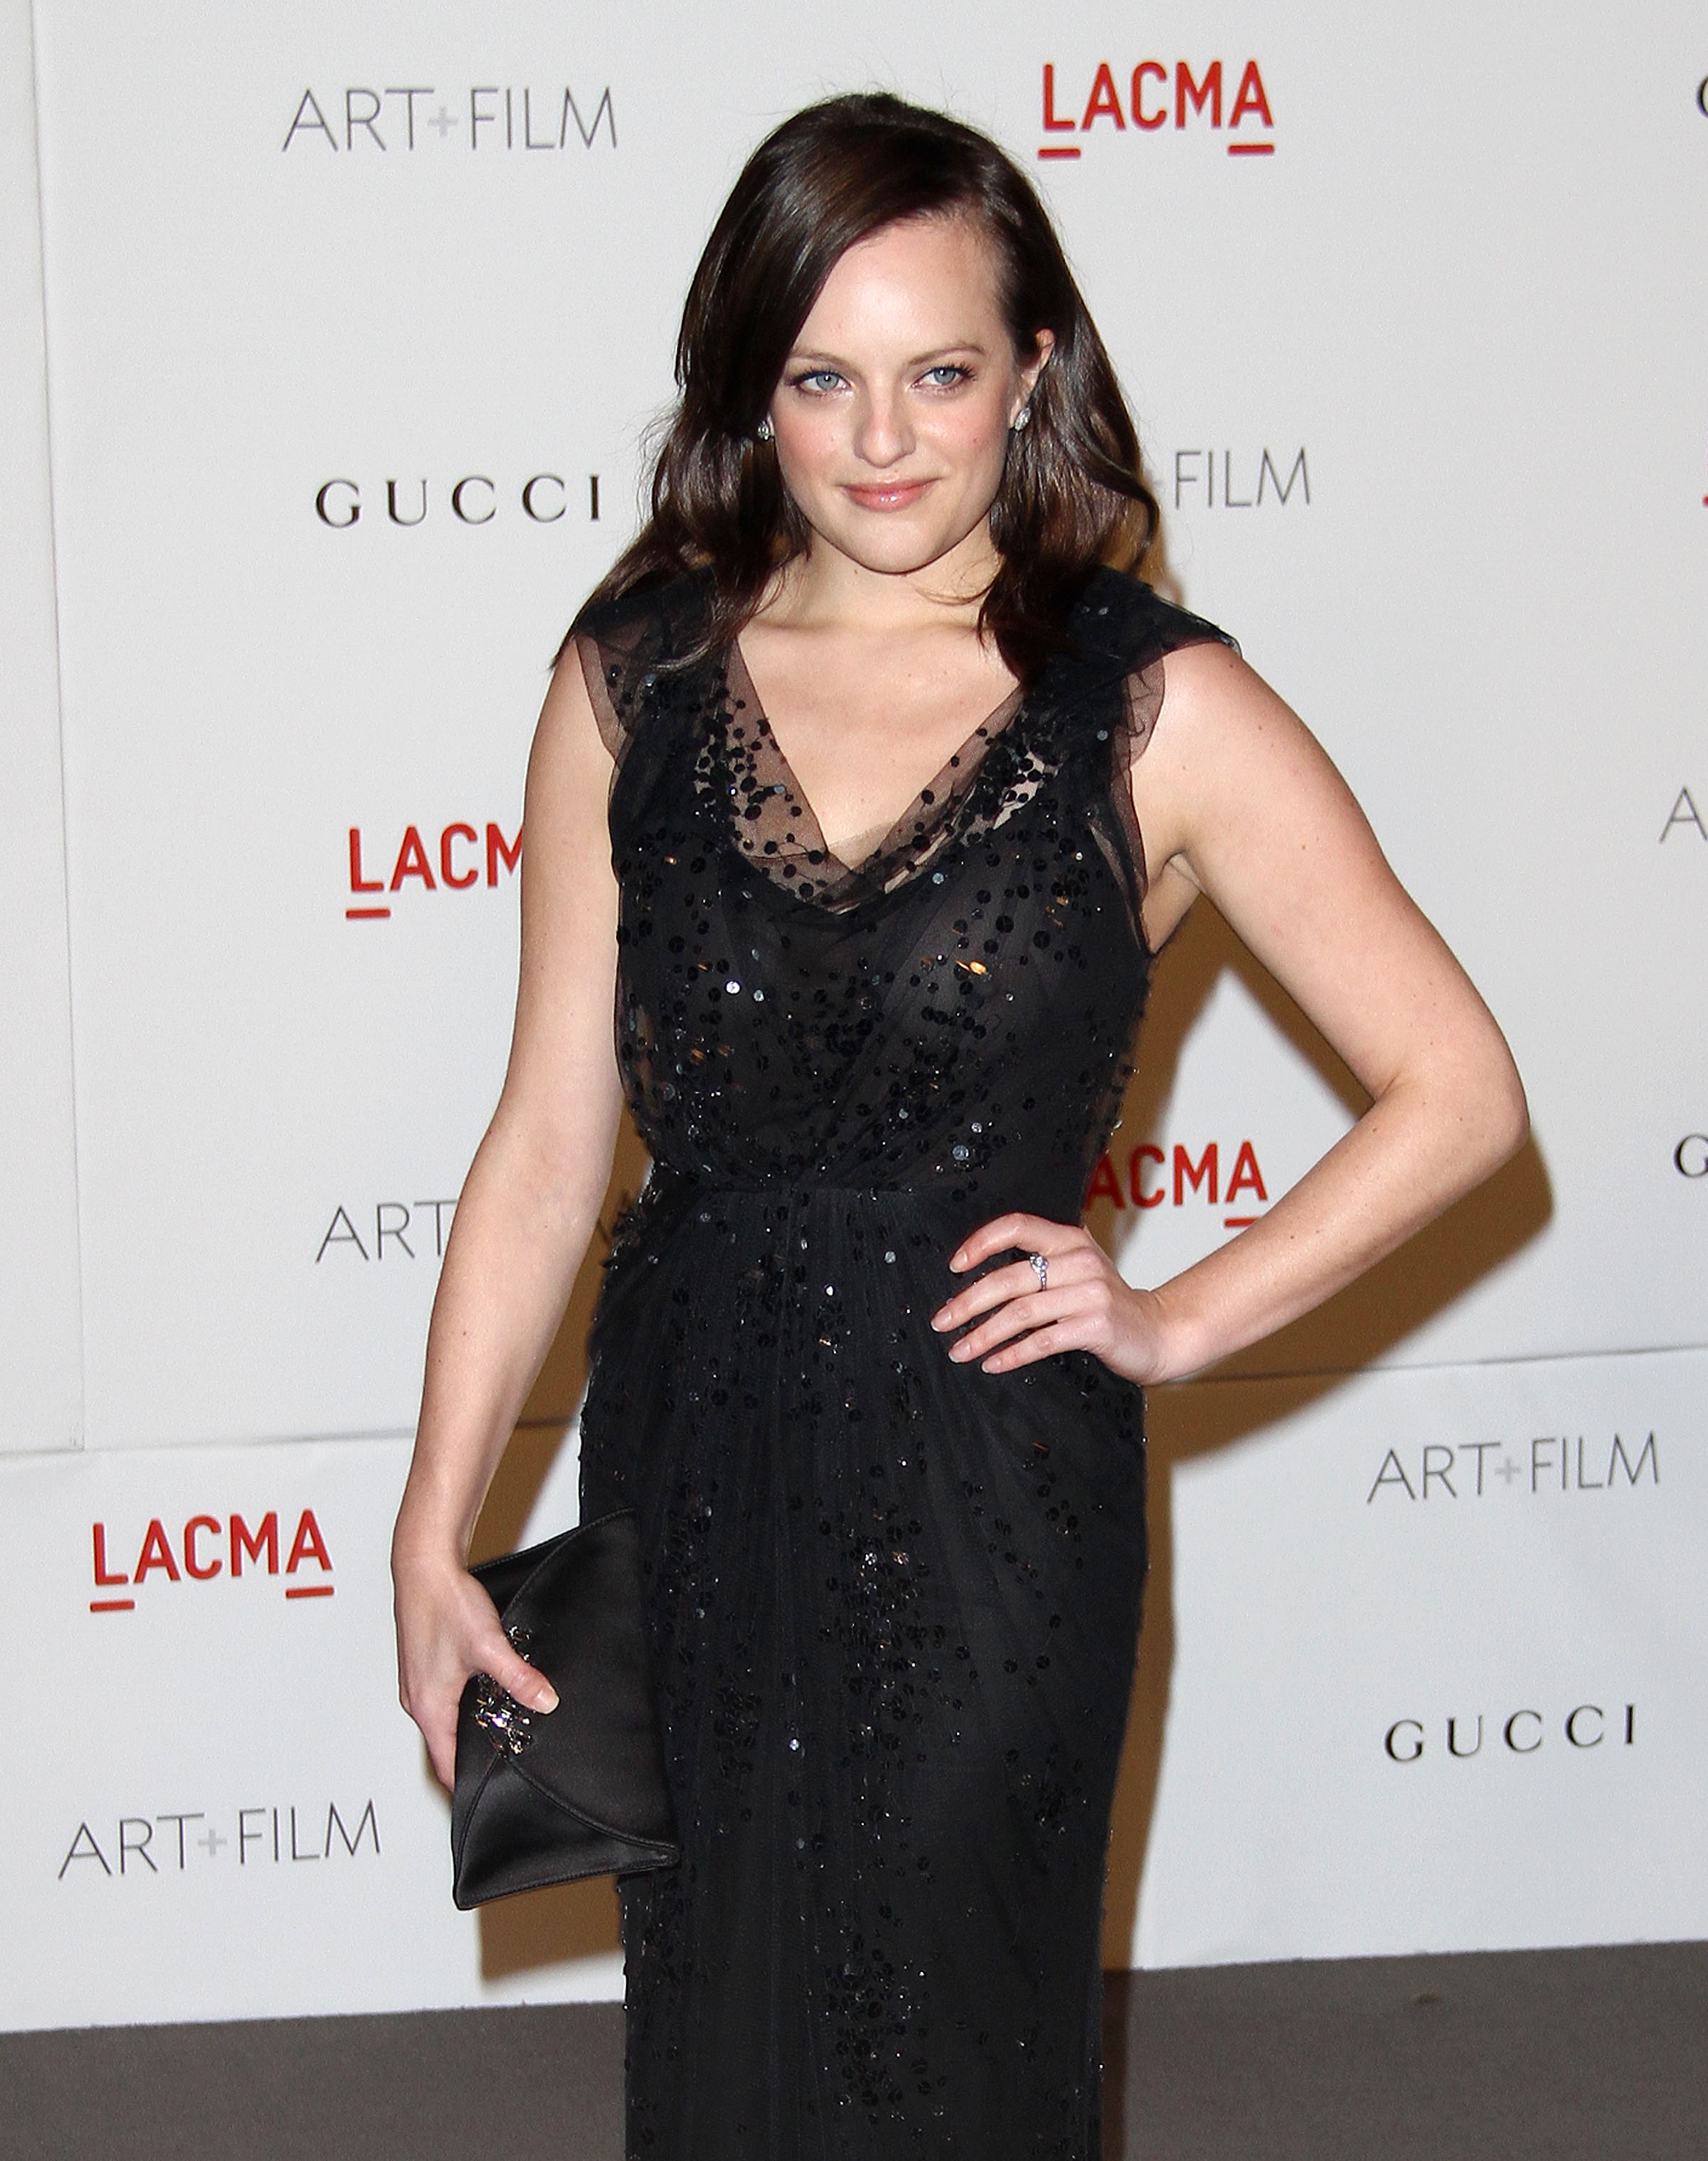 Elisabeth Moss at LACMA Art and Film Gala in Los Angeles